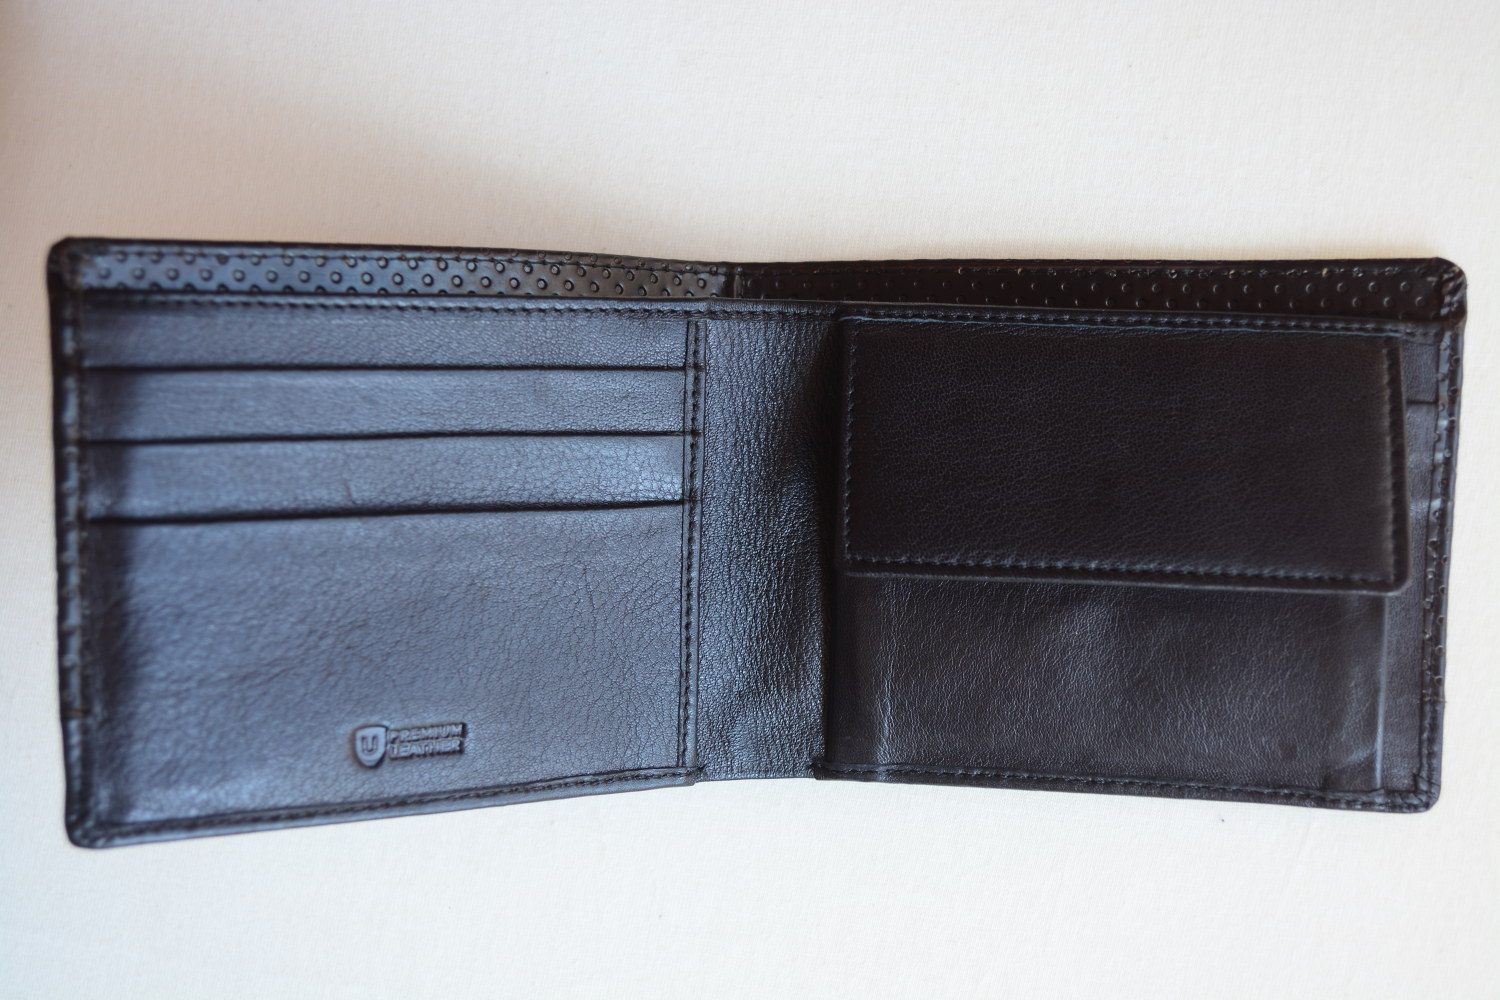 Urby Wallet for Men